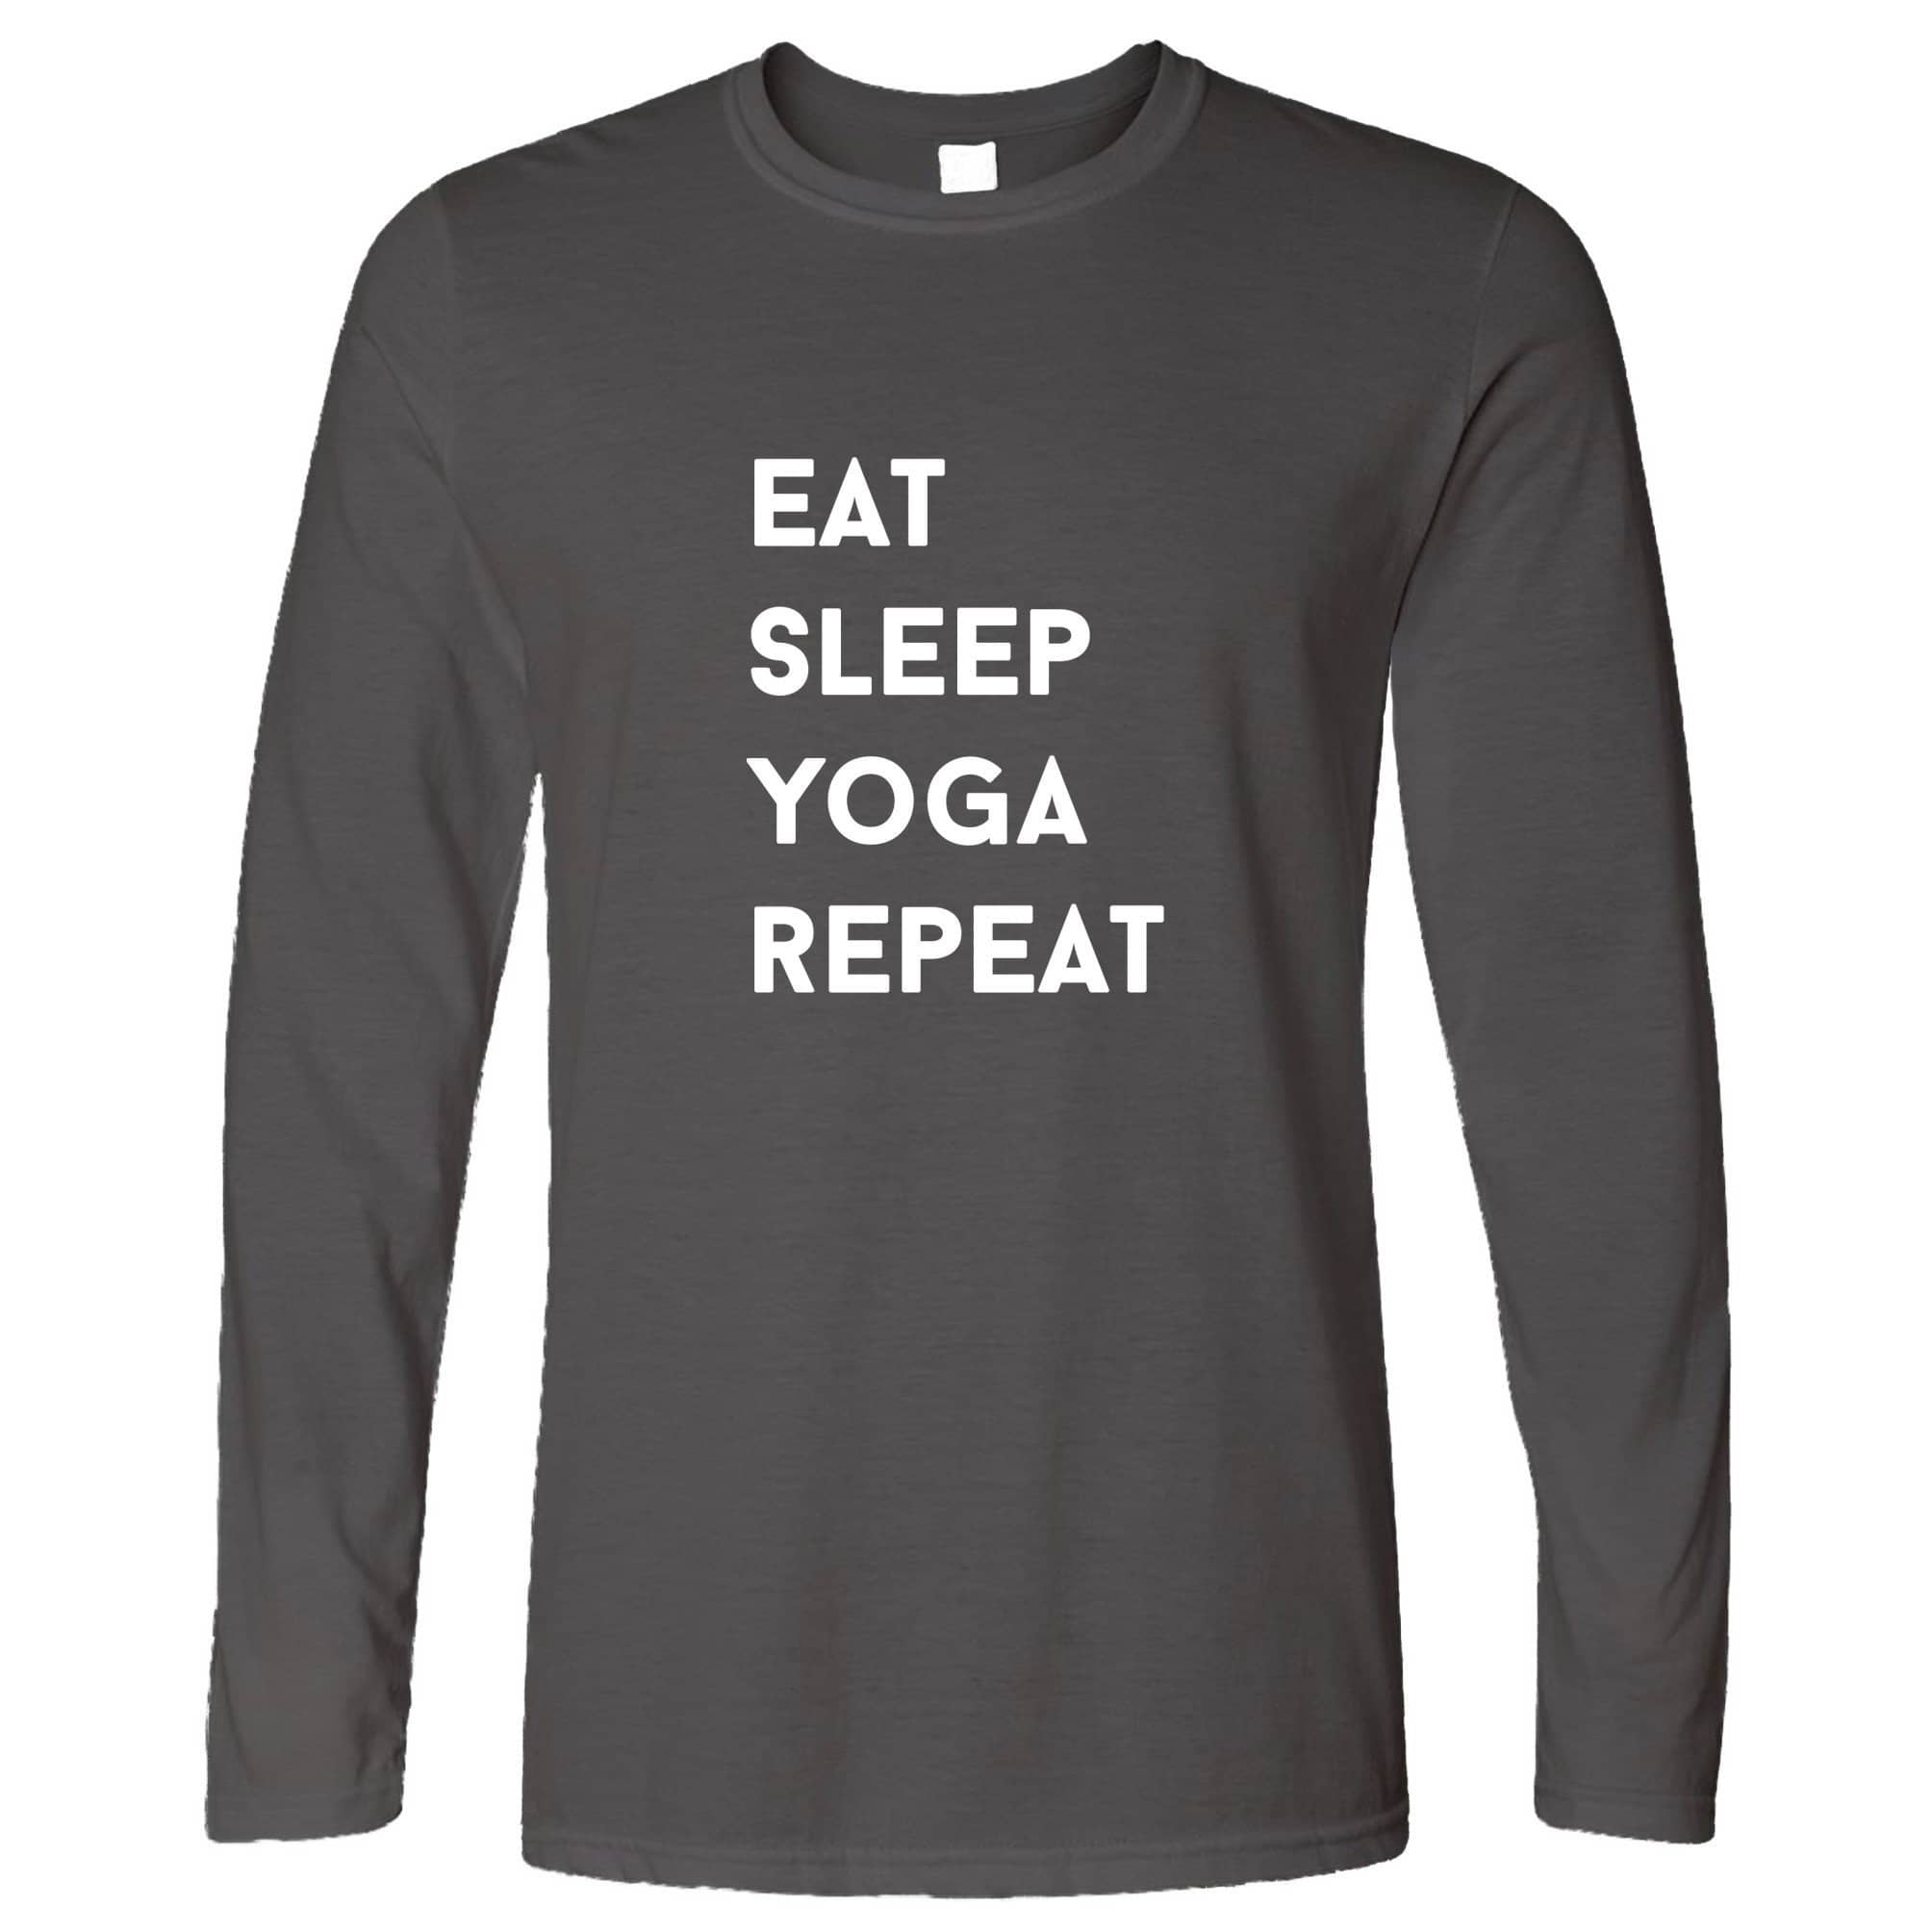 Gym Long Sleeve Eat, Sleep, Yoga, Repeat Slogan T-Shirt